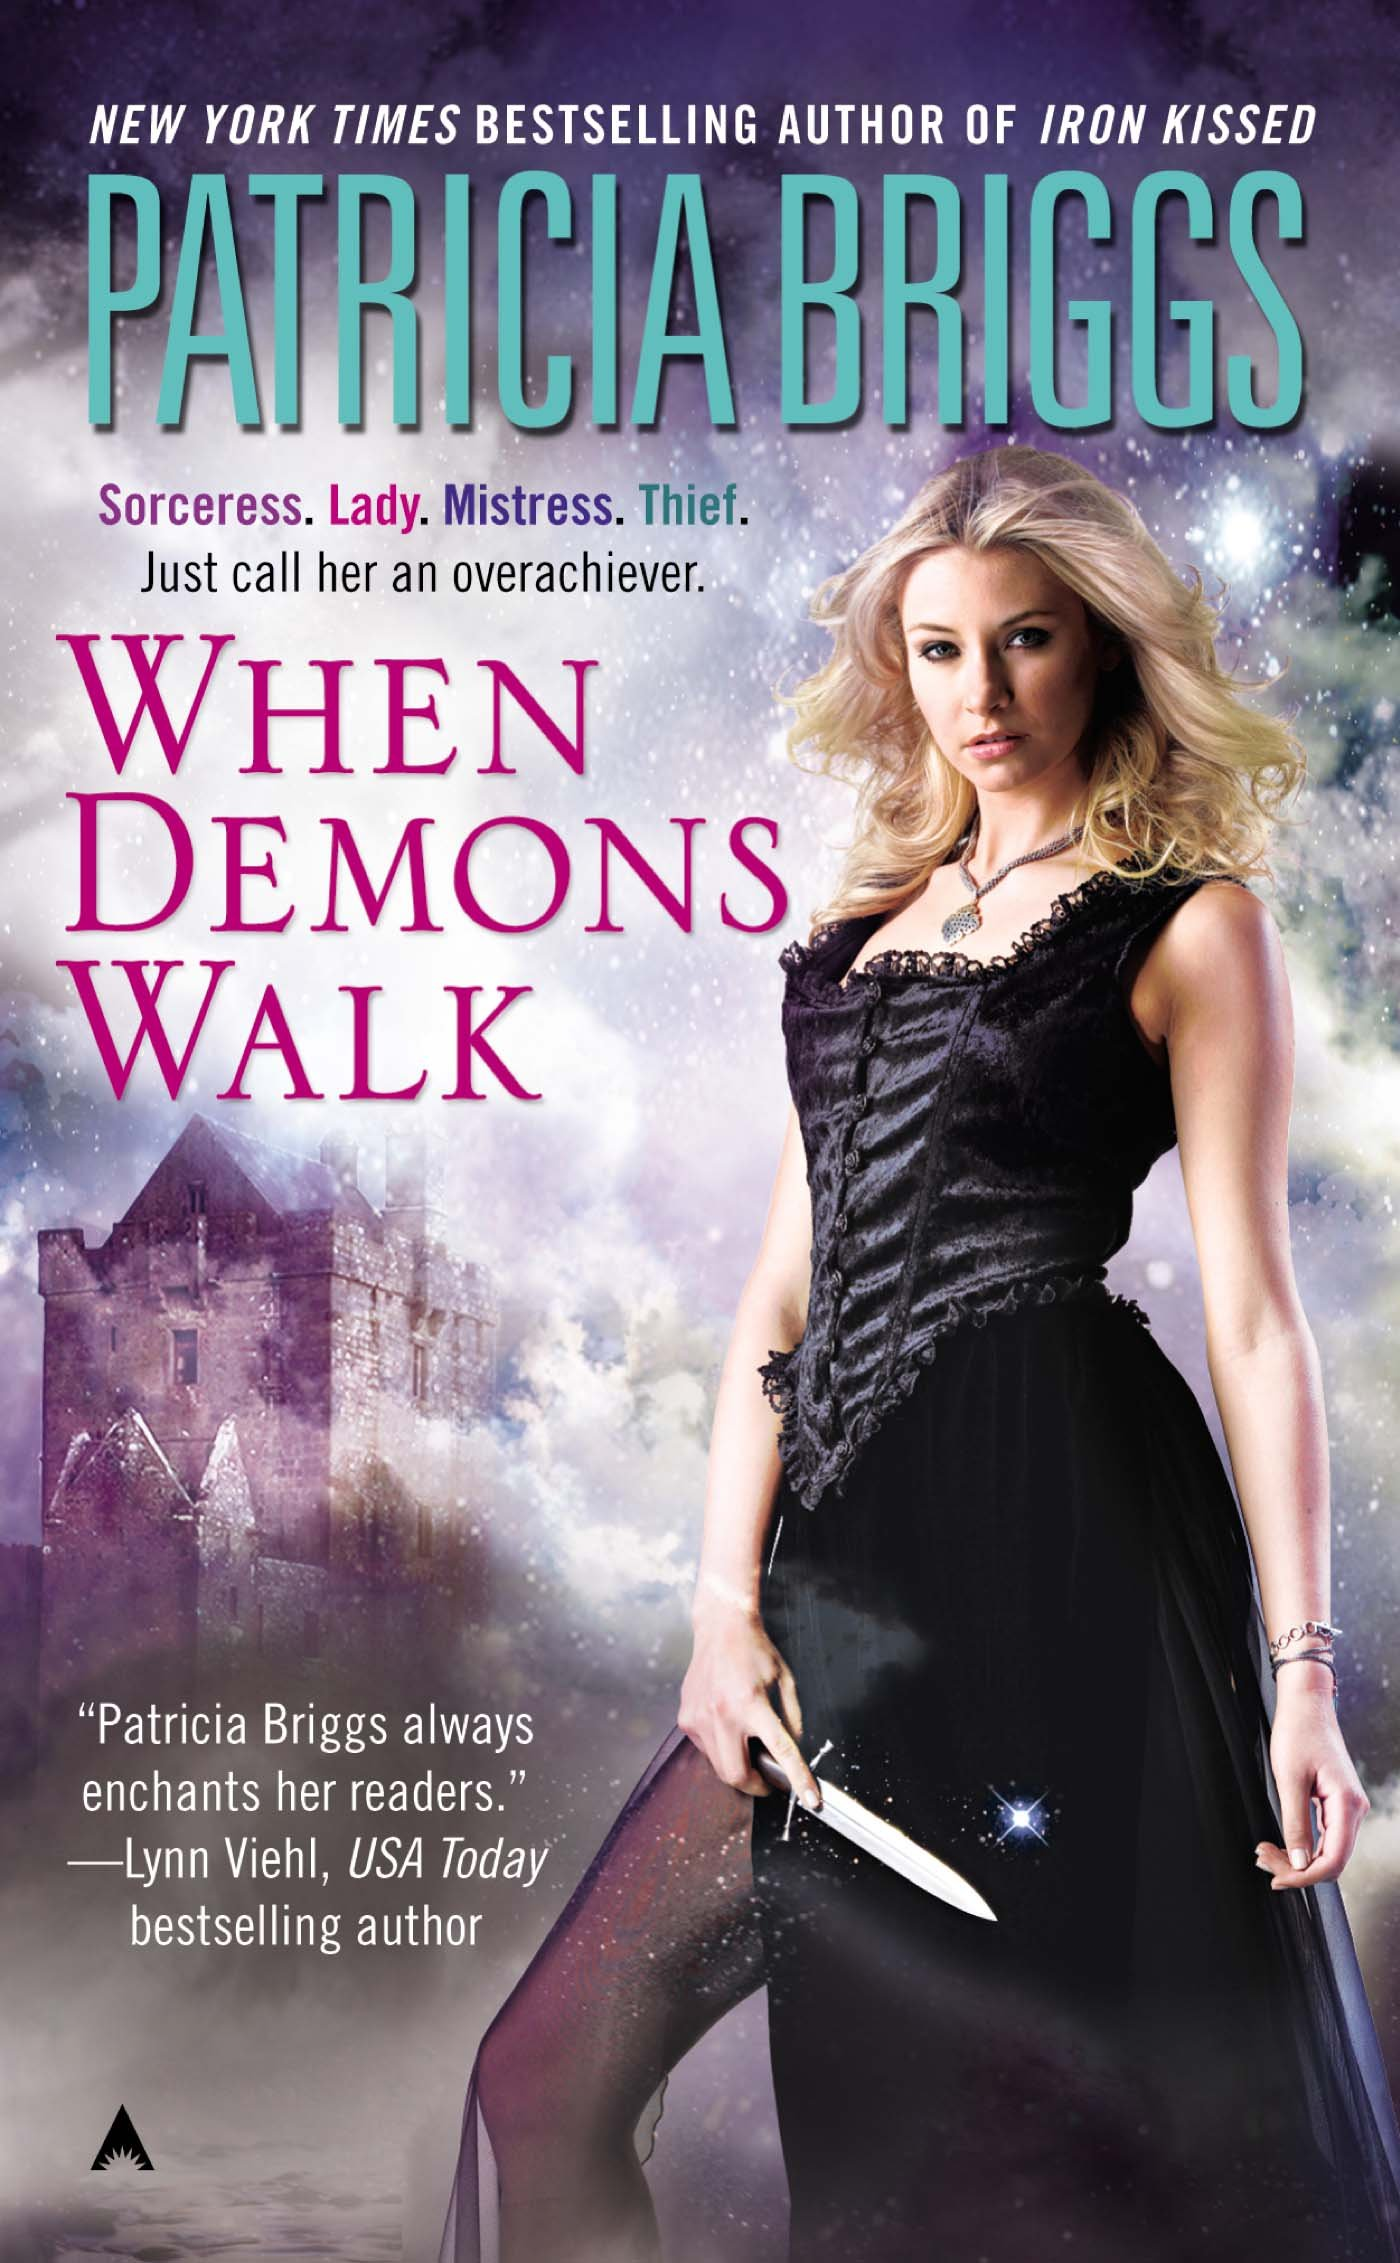 Do you have a book you read over and over because you can't stop thinking about the characters, world, and story? When Demons Walk by Patricia Briggs is that book for me. The novel lingers with its readers because Briggs breaks a few rules, conventions, and tropes, which you can learn to do too. For a chart comparing povs, go to  https://www.ignitedinkwriting.com/point-of-view-chart